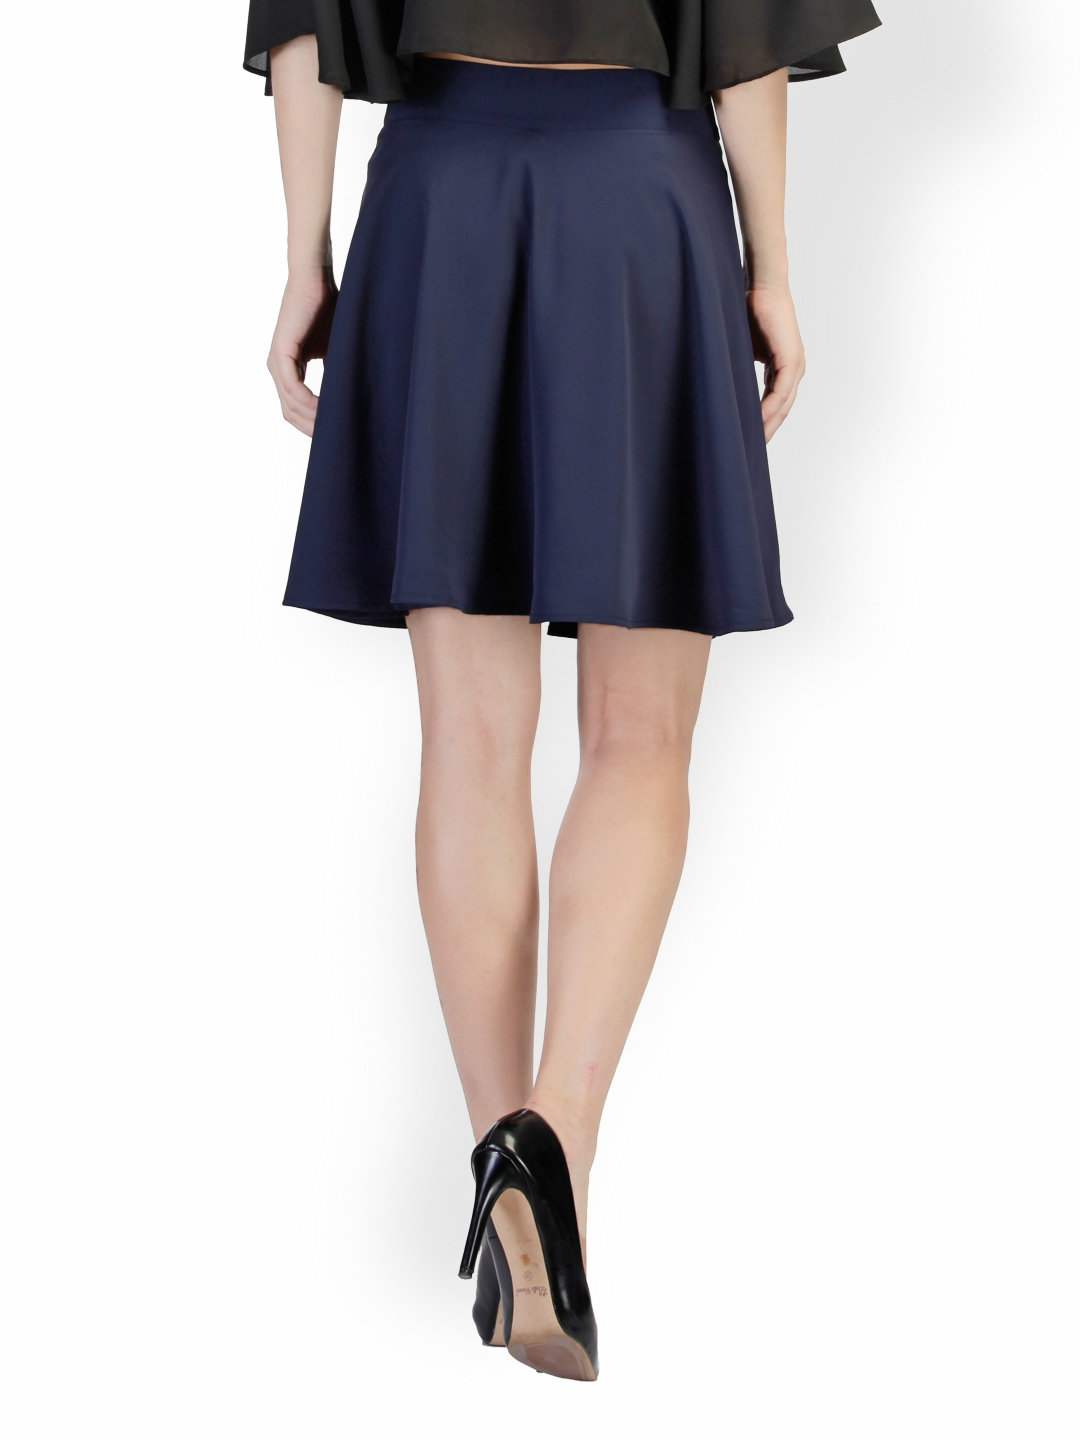 Find great deals on eBay for navy blue skater skirt. Shop with confidence.